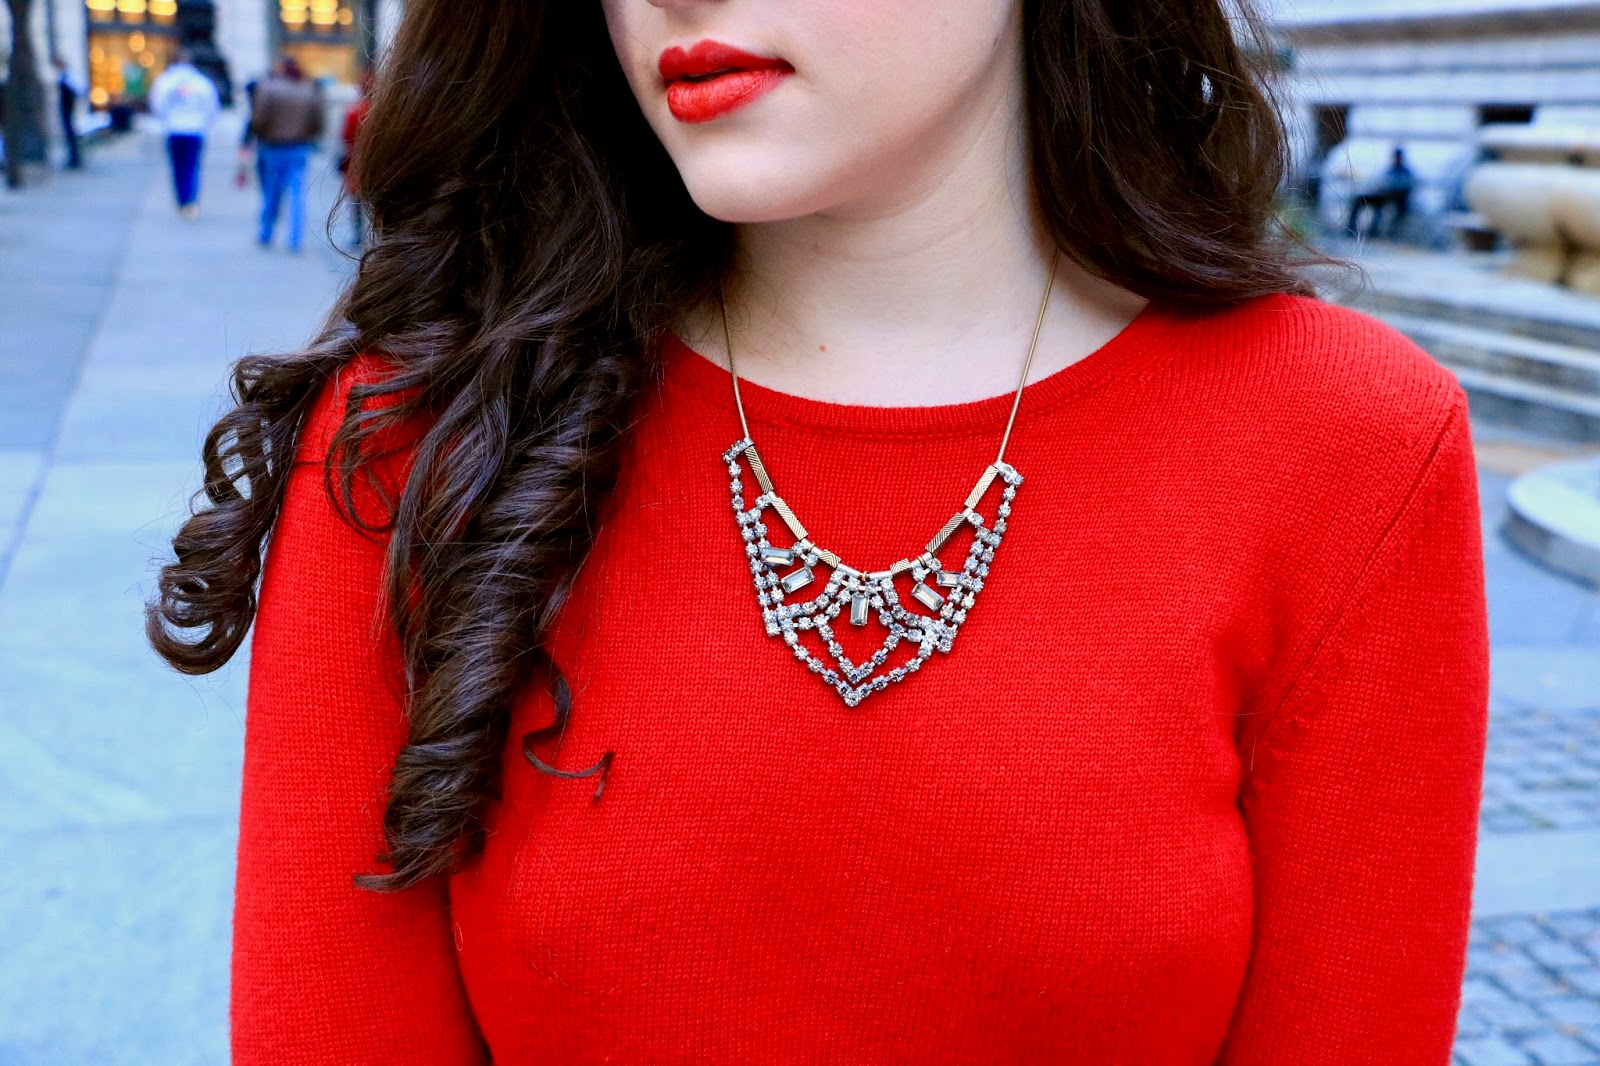 madewell crystal necklace pics